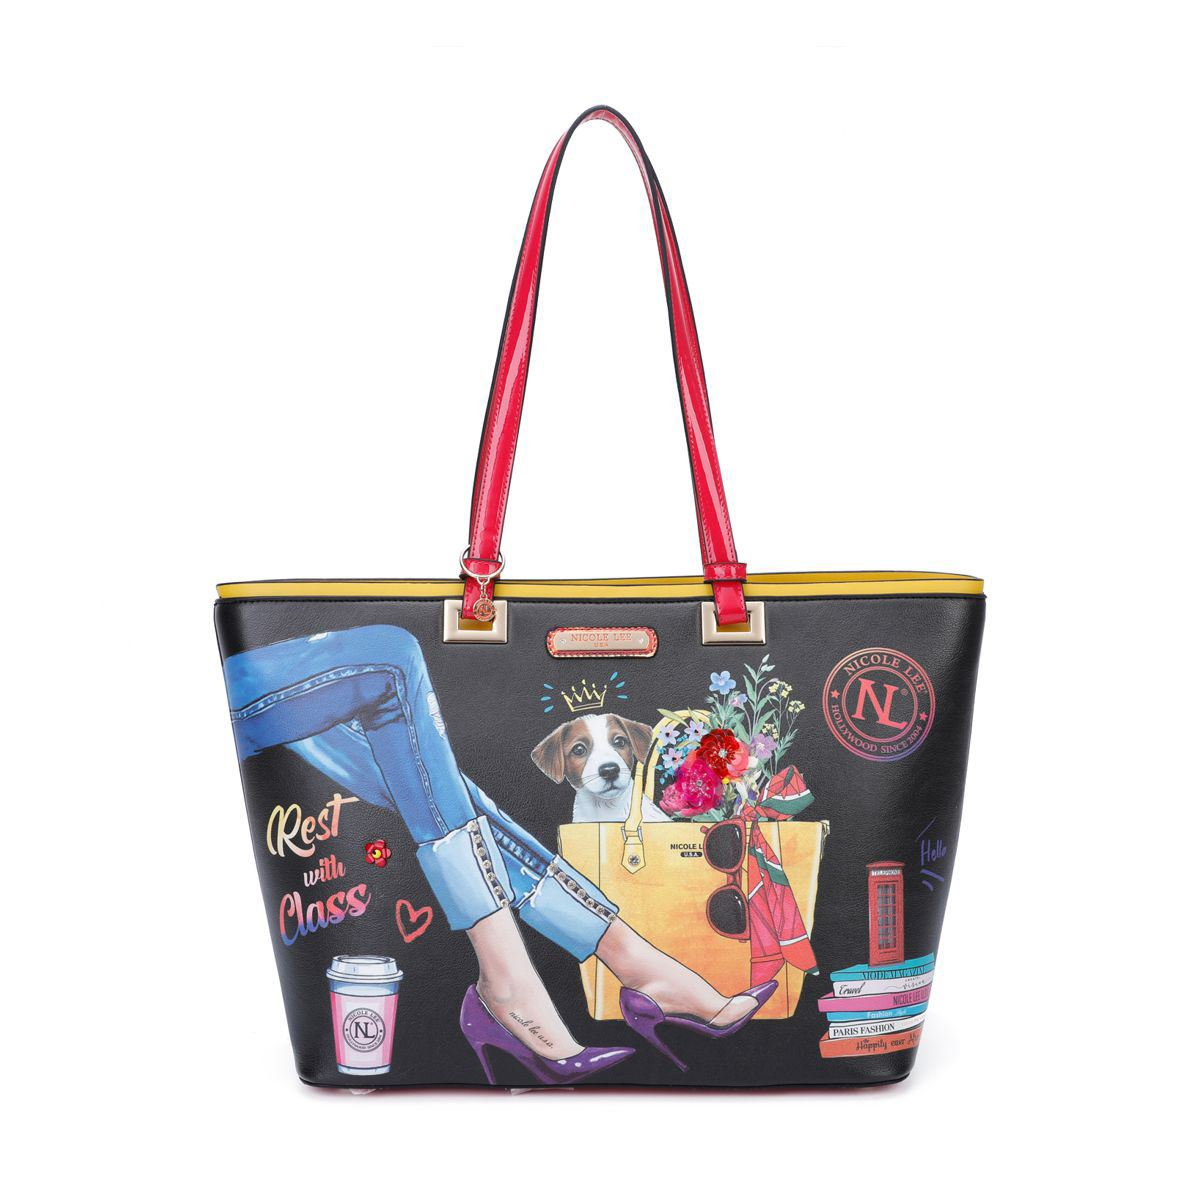 Bolso tote RWC15235 rest with class